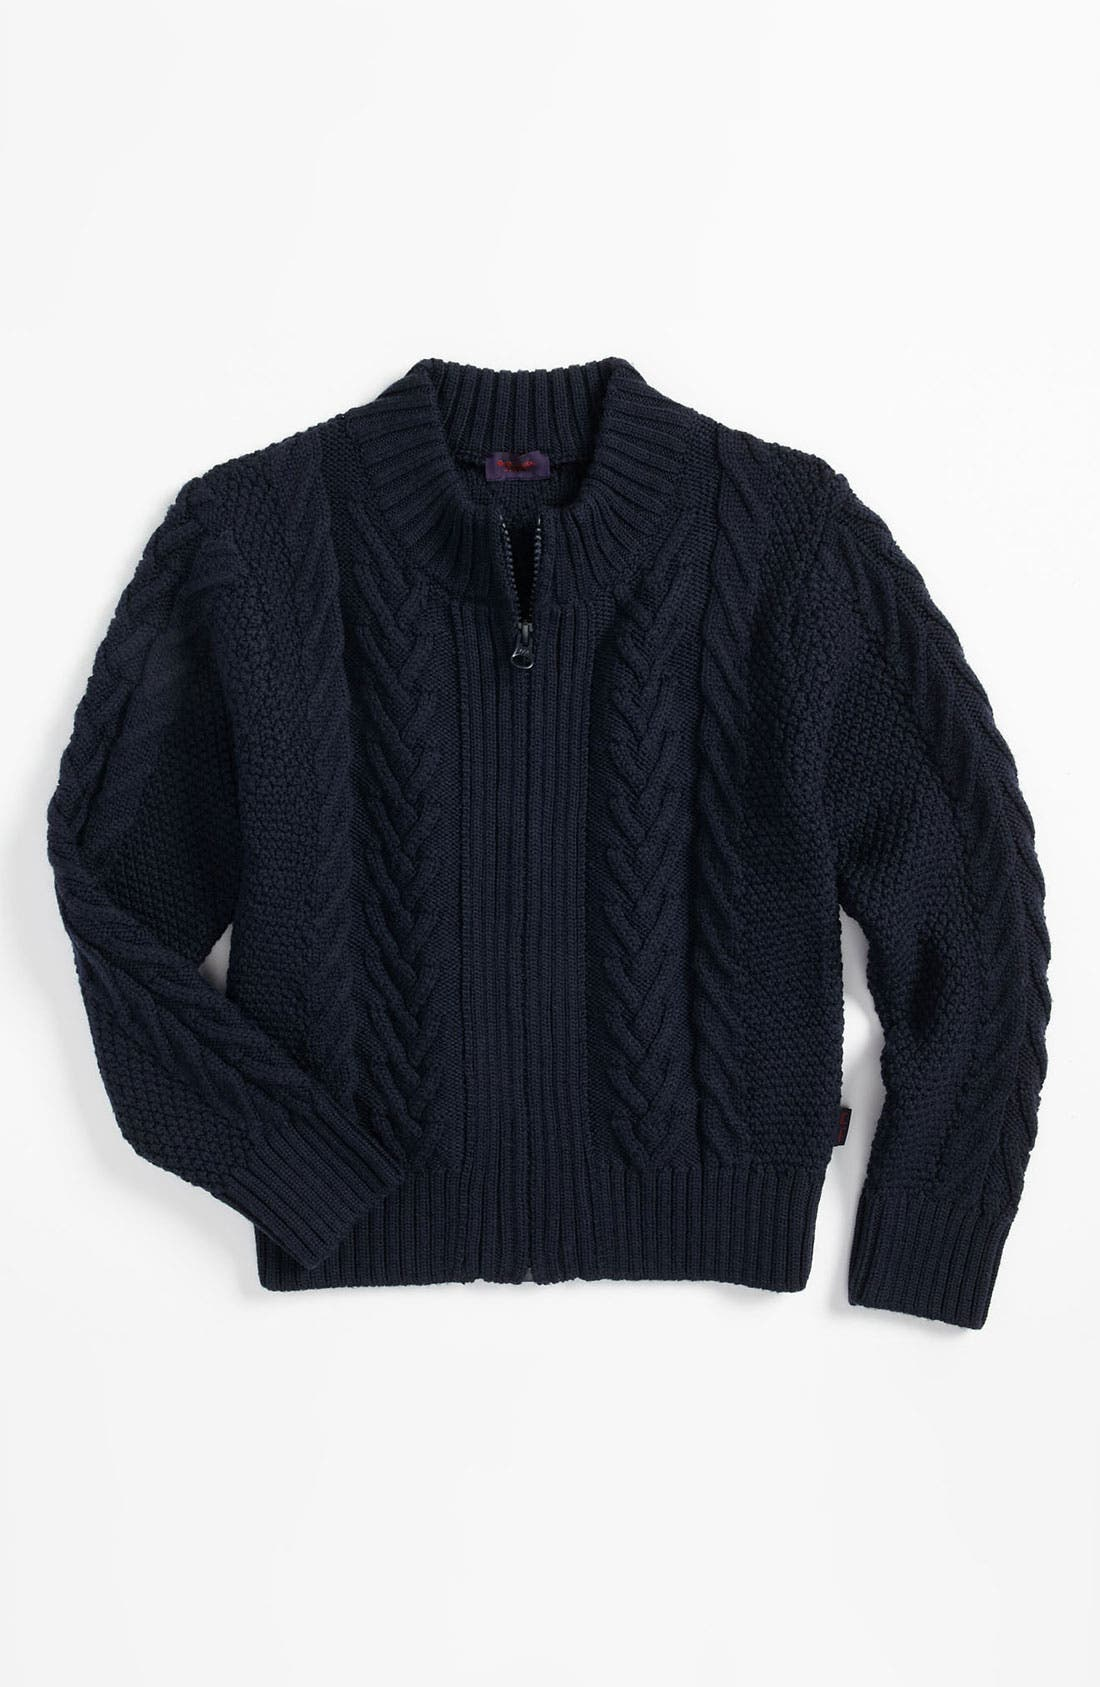 Alternate Image 1 Selected - Paul Smith Junior Cable Knit Wool Cardigan (Big Boys)